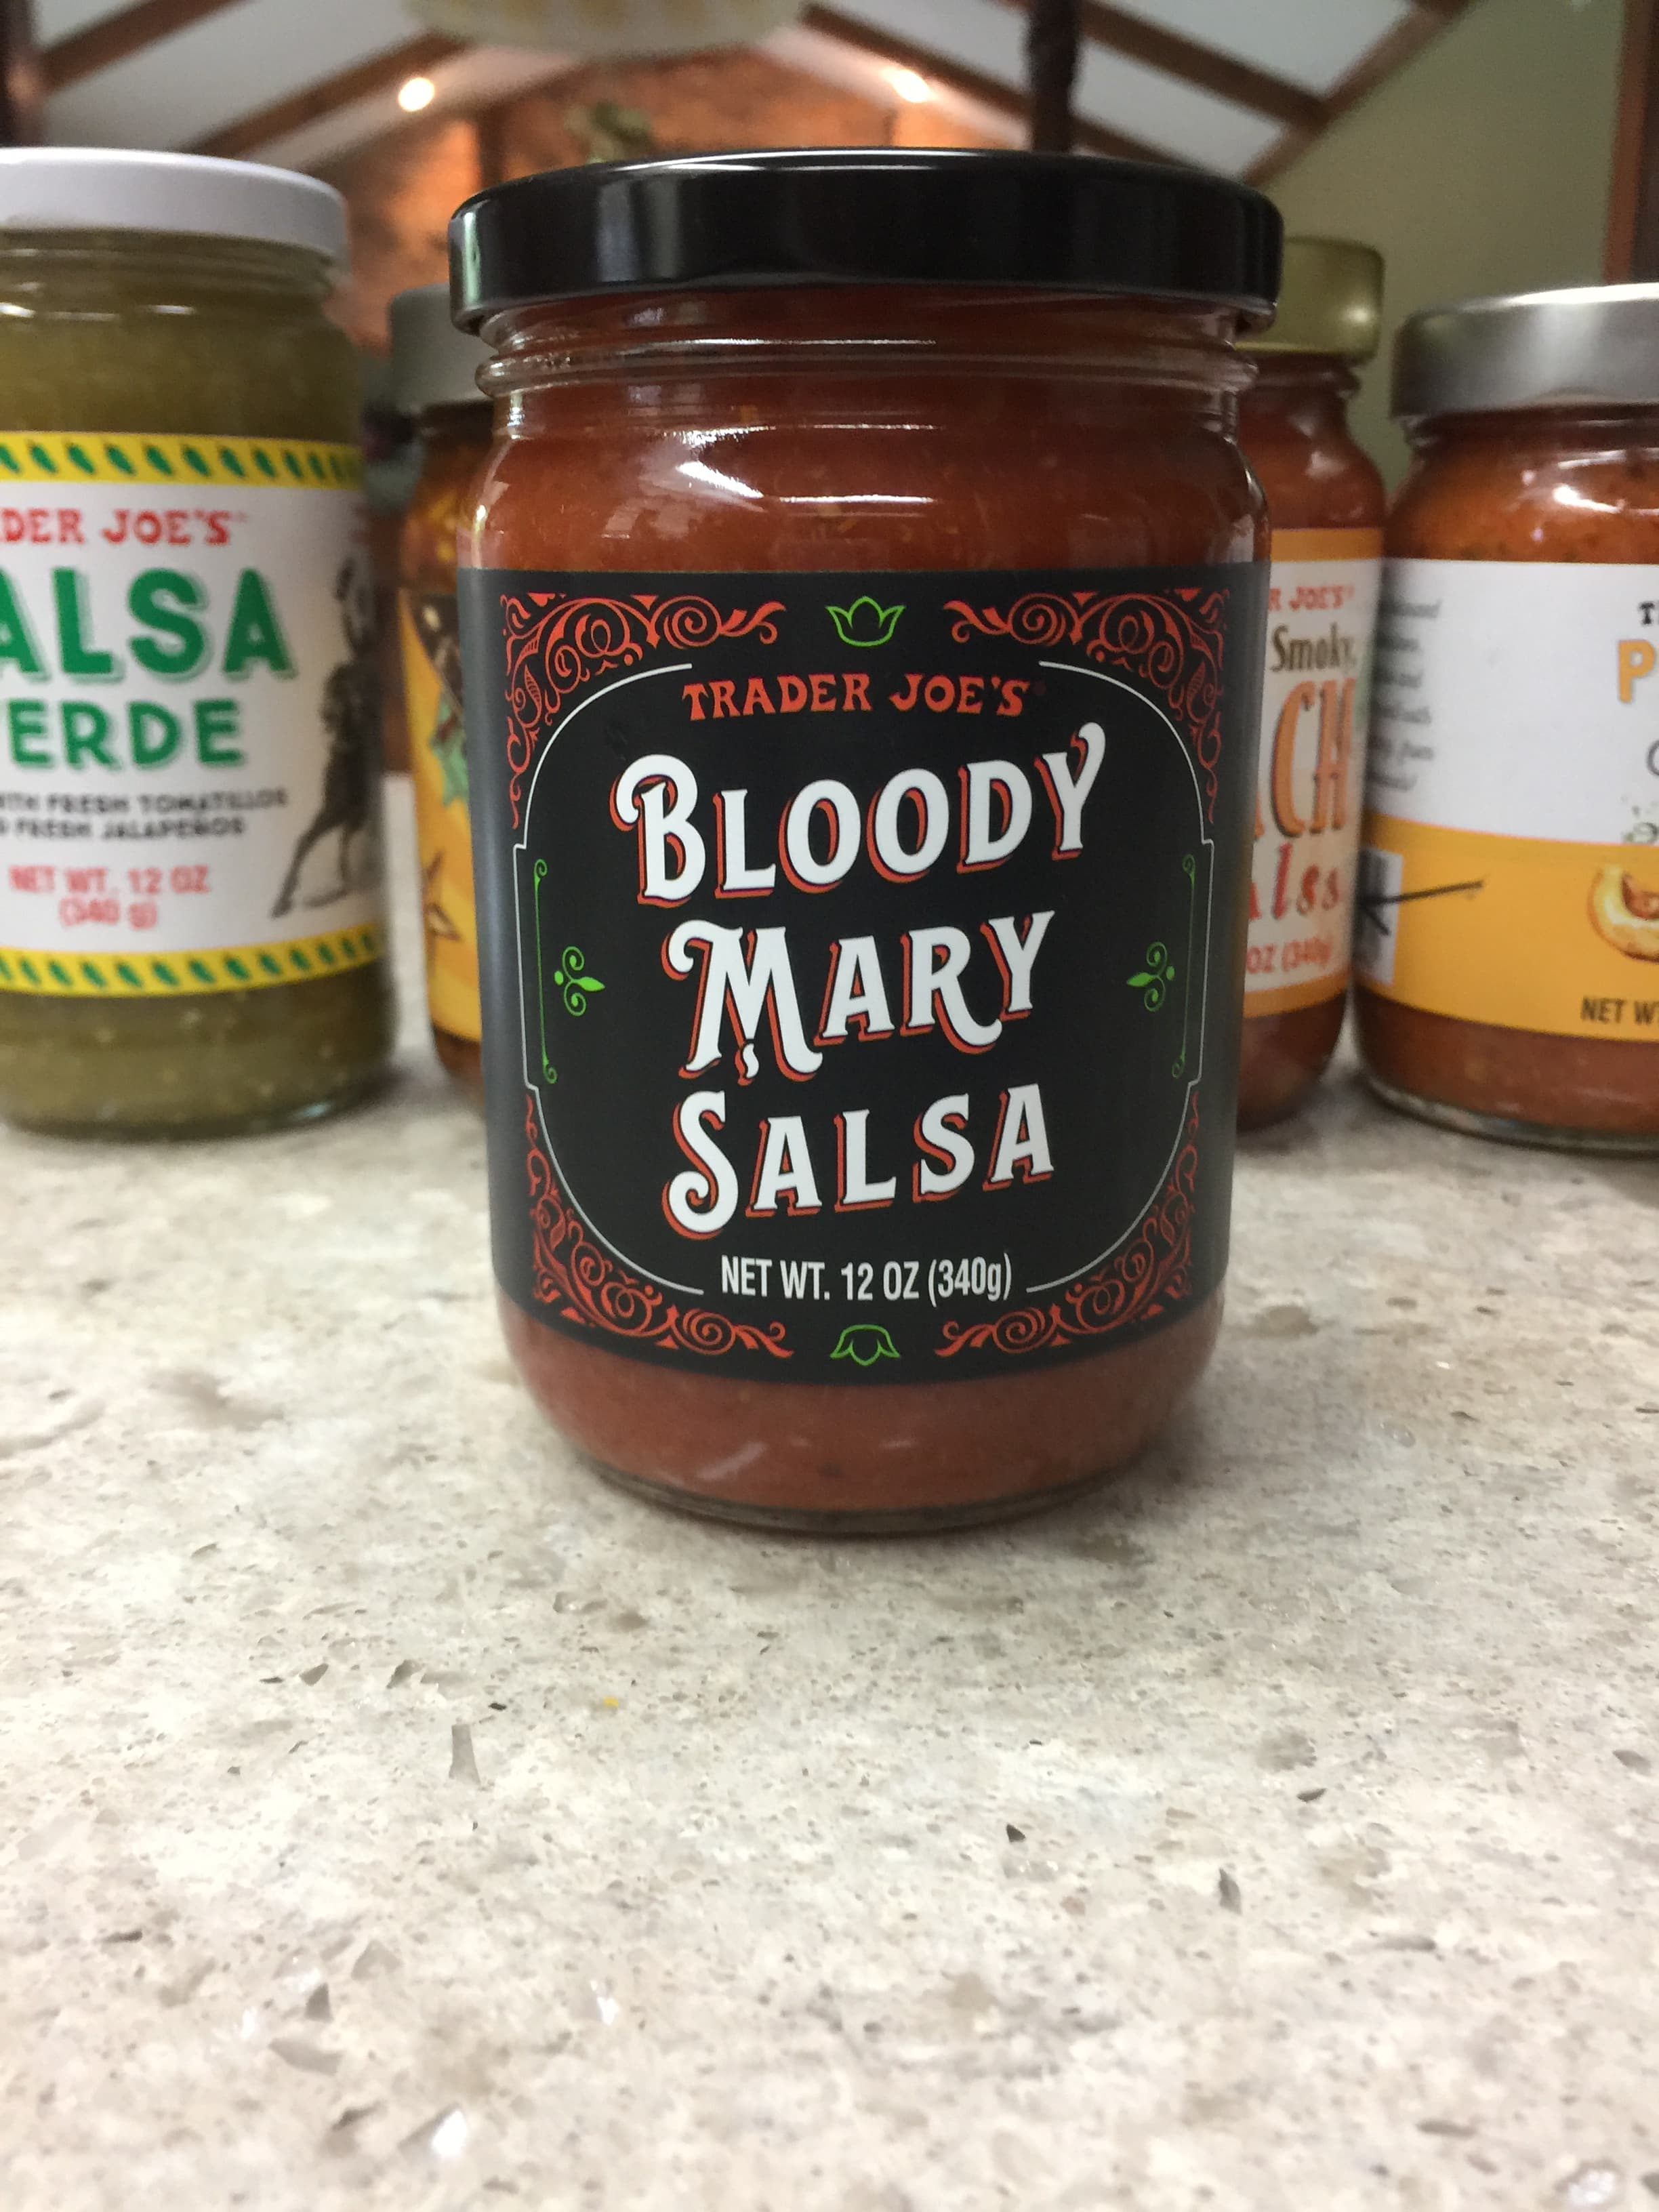 This Bloody Mary Salsa from Trader Joe's Was Worth the 5-Month Wait